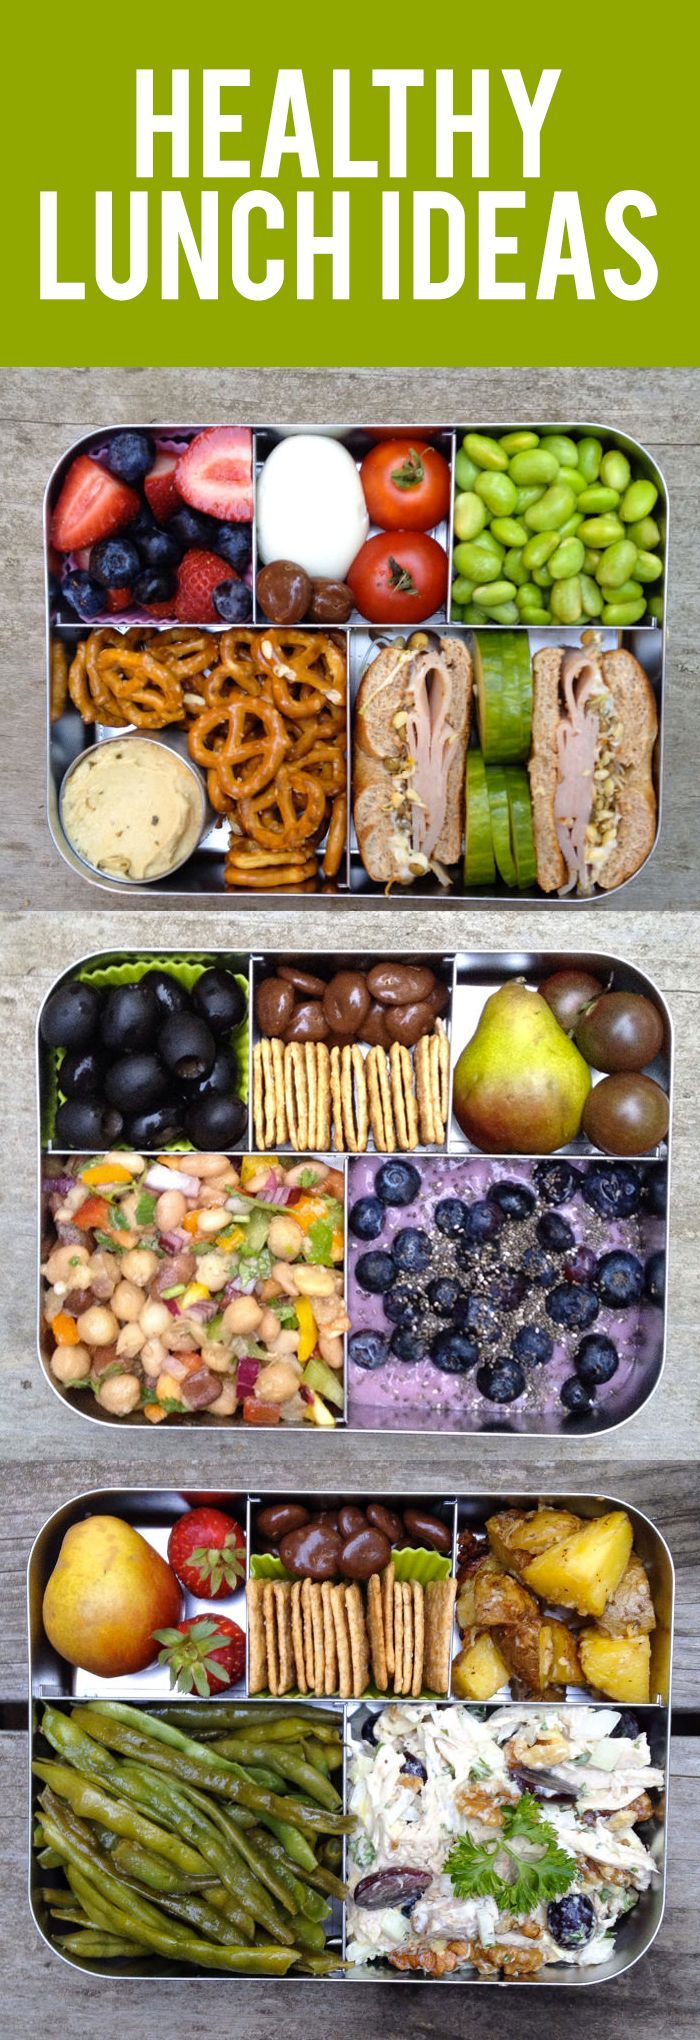 Need some ideas for healthy lunches? Look no further! Tons of healthy, easy, and quick lunch ideas with photos. http://eatdojo.com/healthy-recipes-salads-haters/